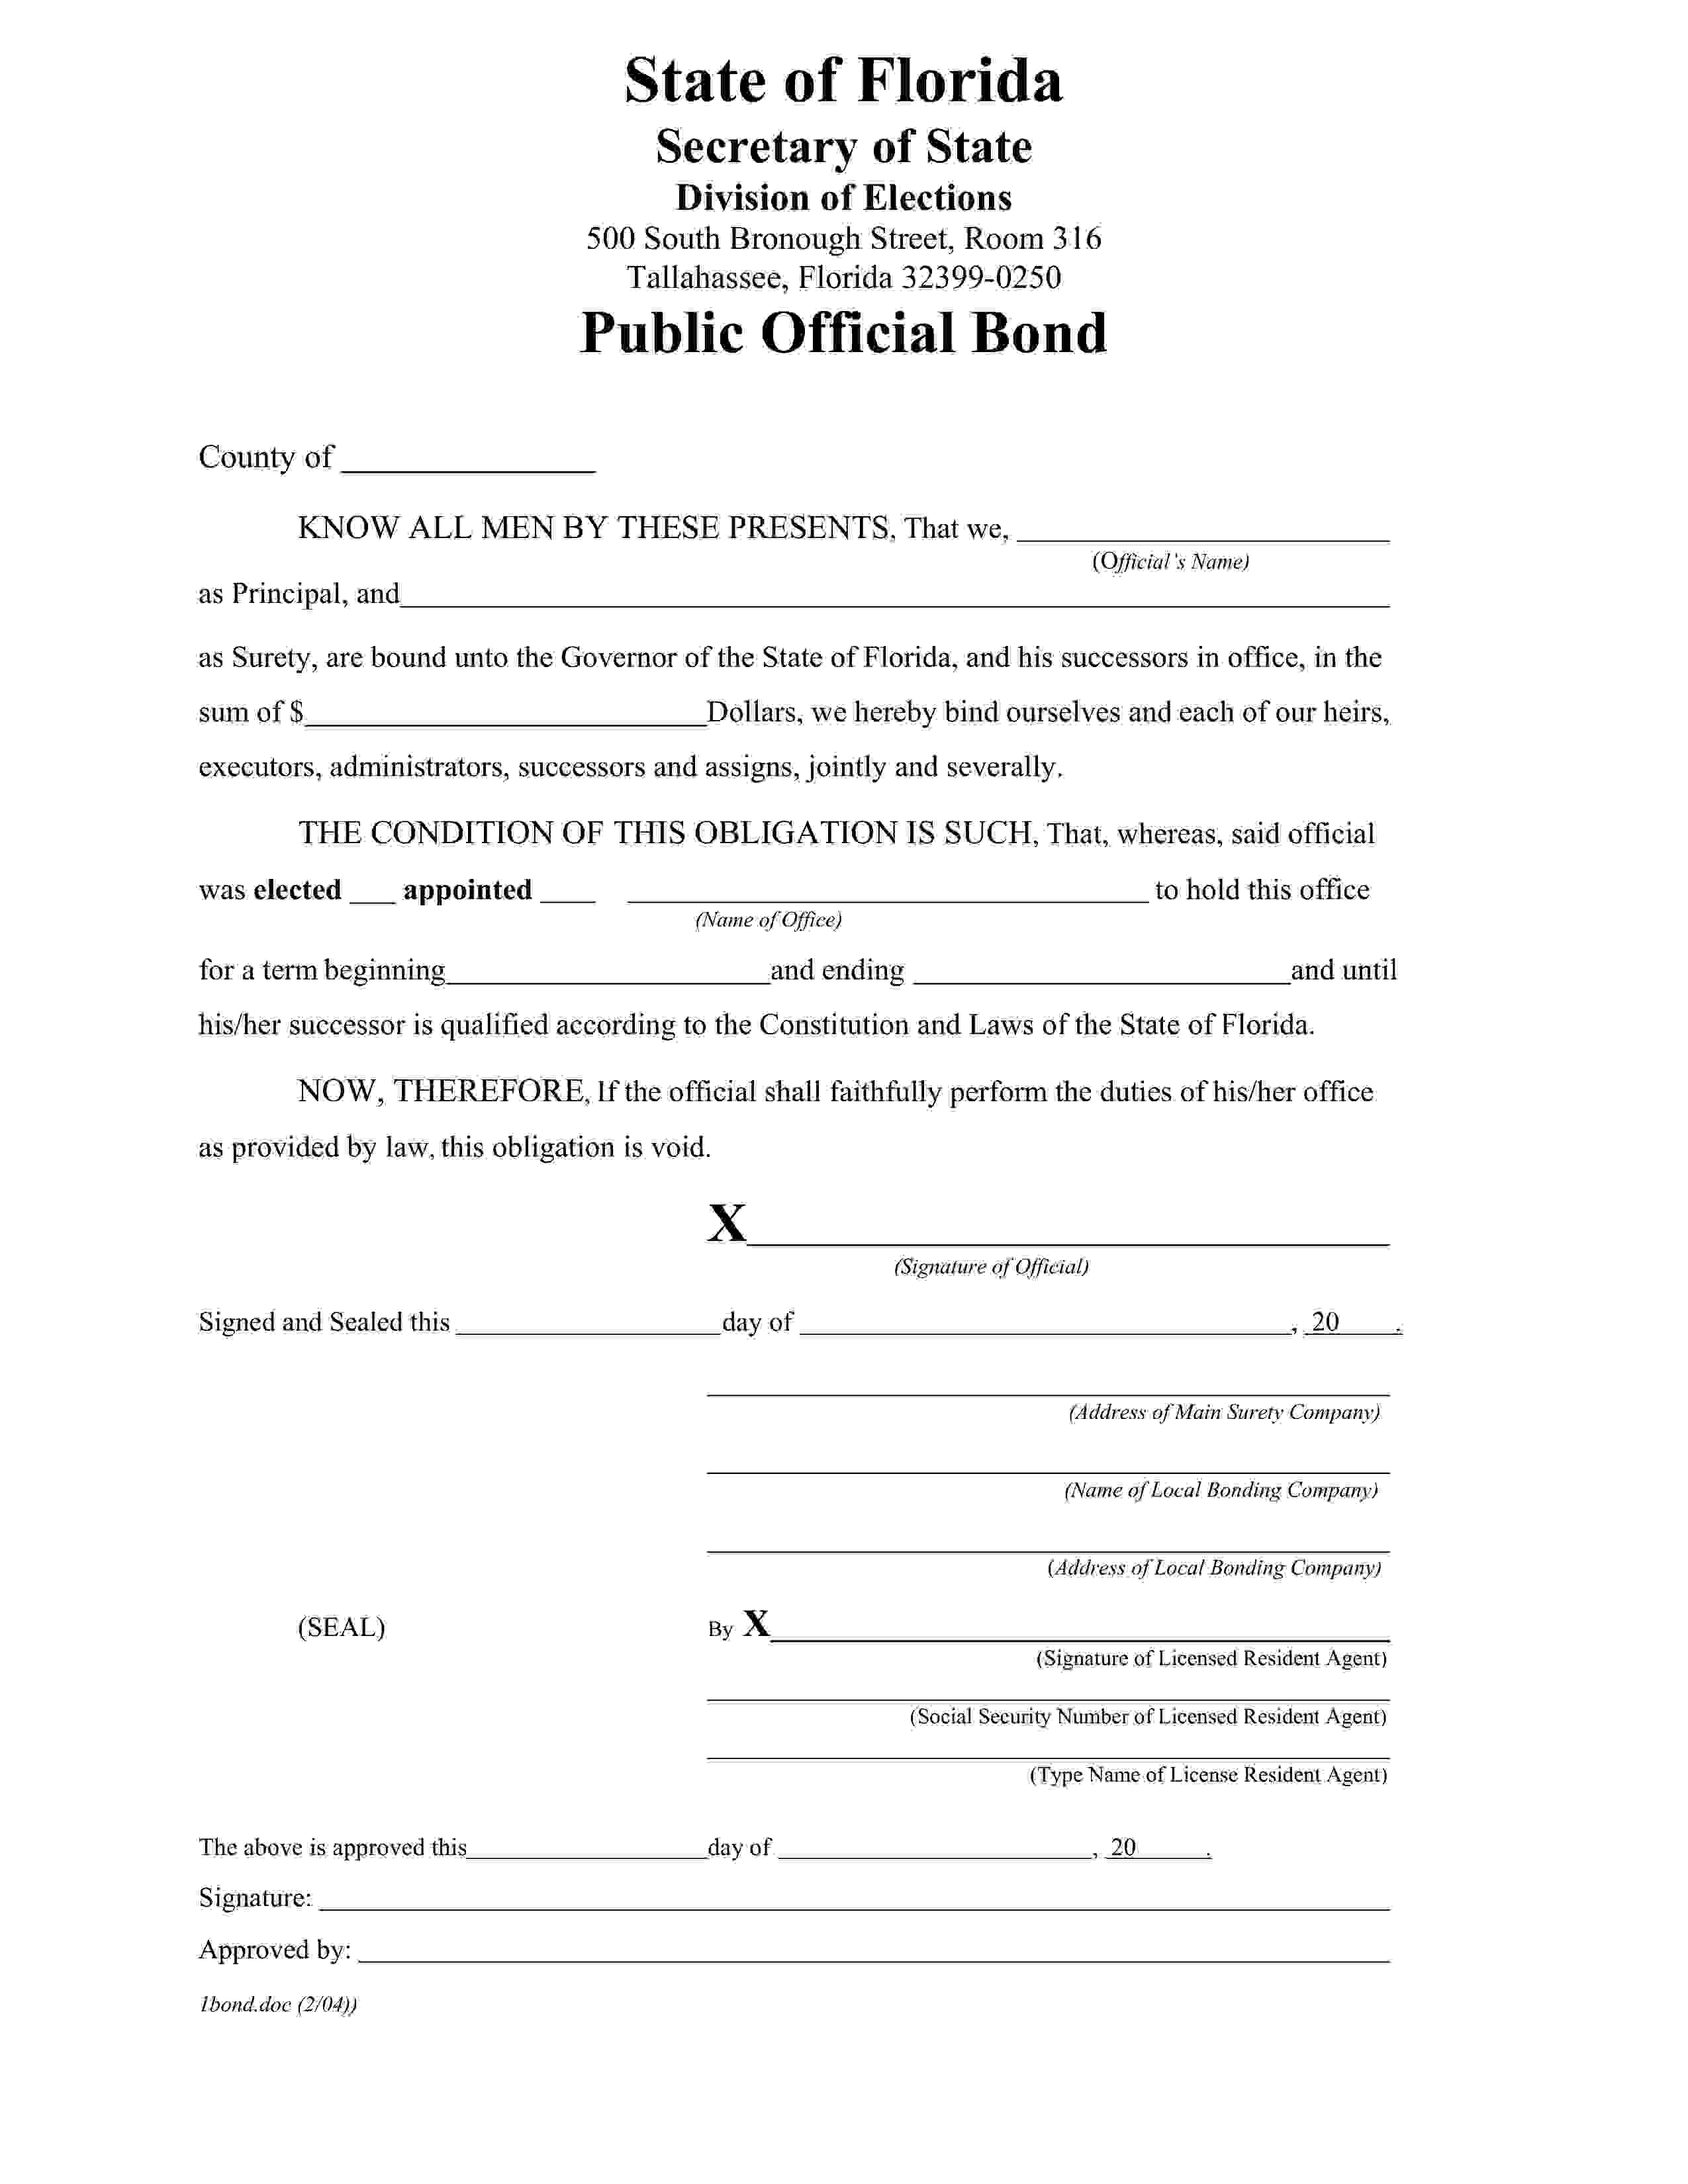 Public Official Position Other Than Treasurer or Tax Collector Bond sample image